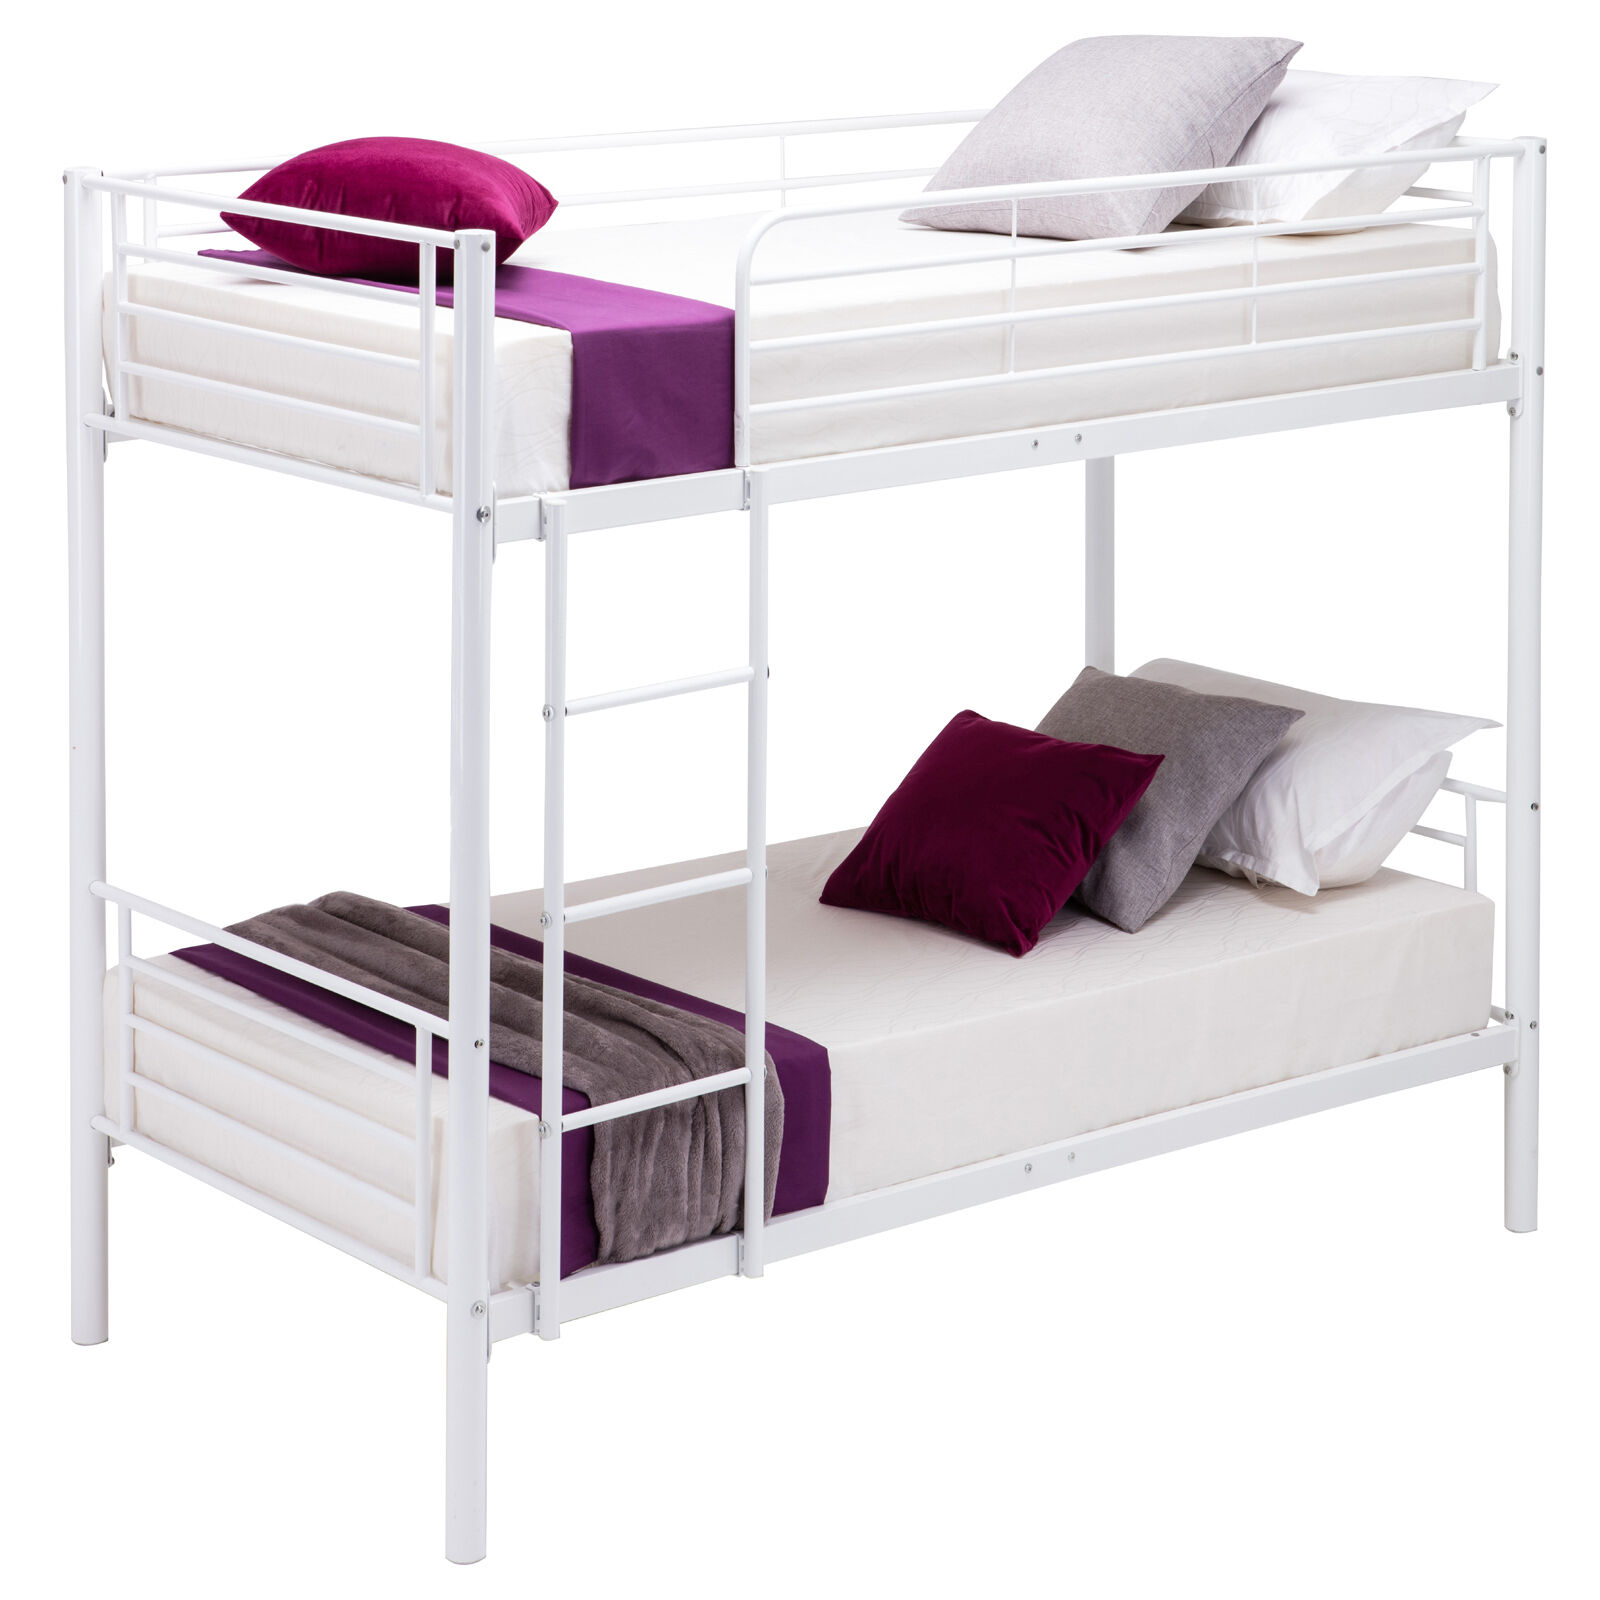 Bn 2x3ft bunk white single metal bed frame 2 person for for Single bunk bed